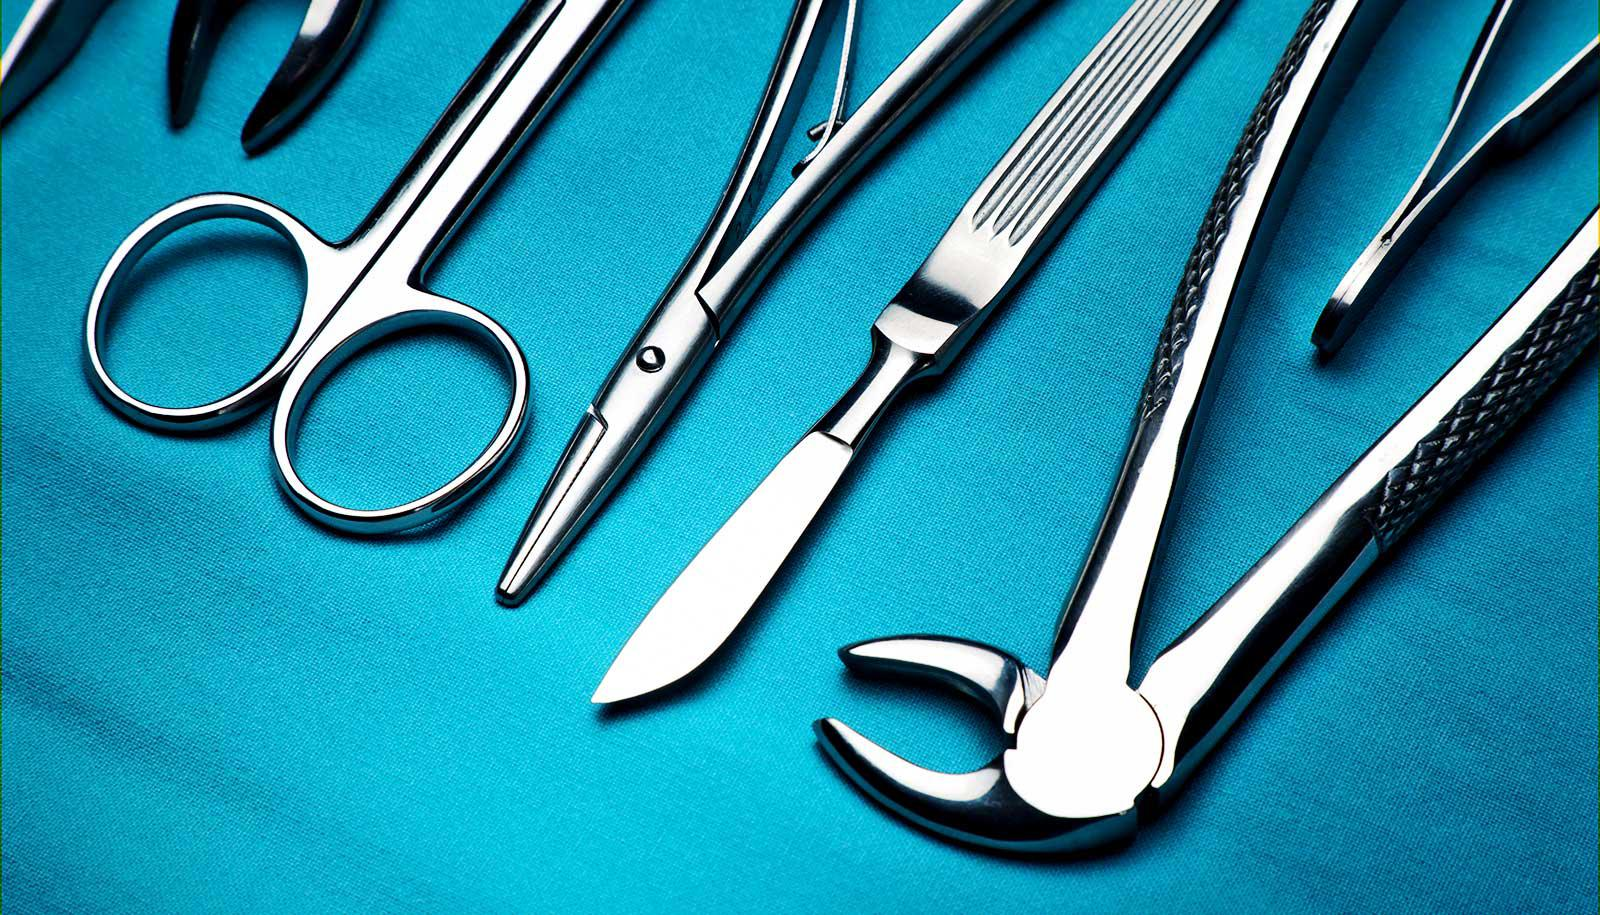 Surgical implements on a blue cloth